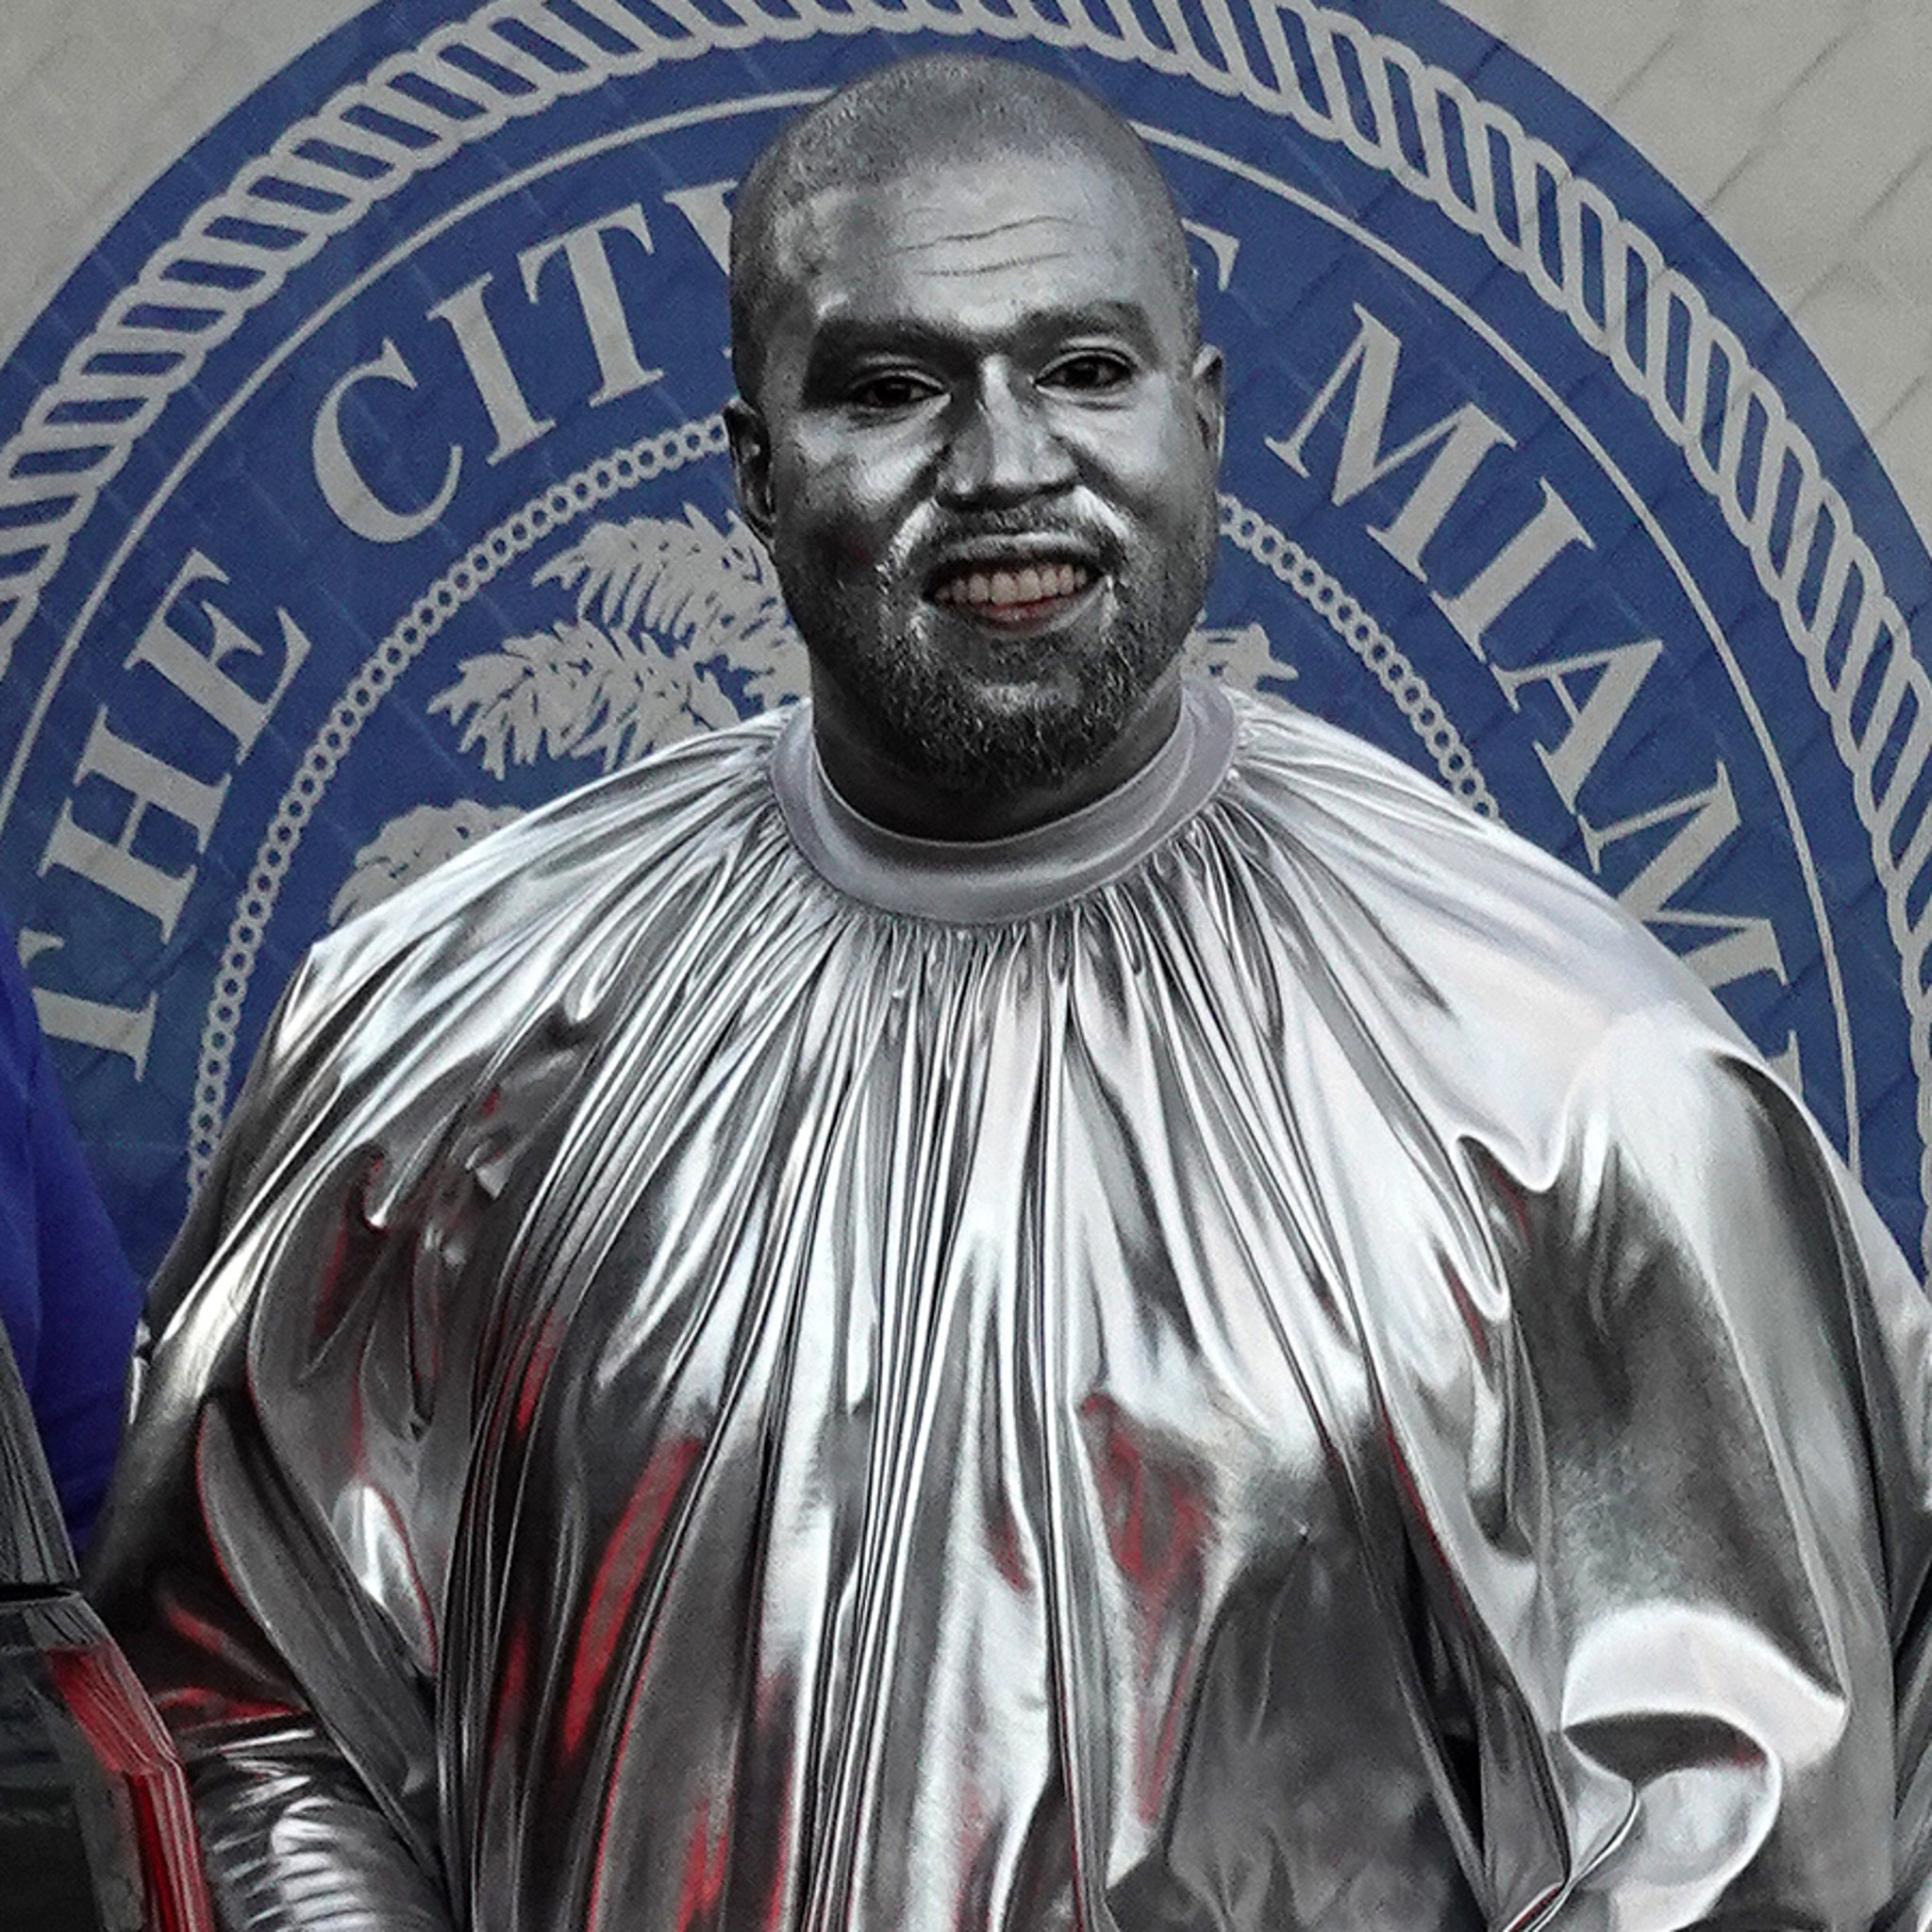 Kanye West's Entire Body Covered in Silver For New Opera, 'Mary'